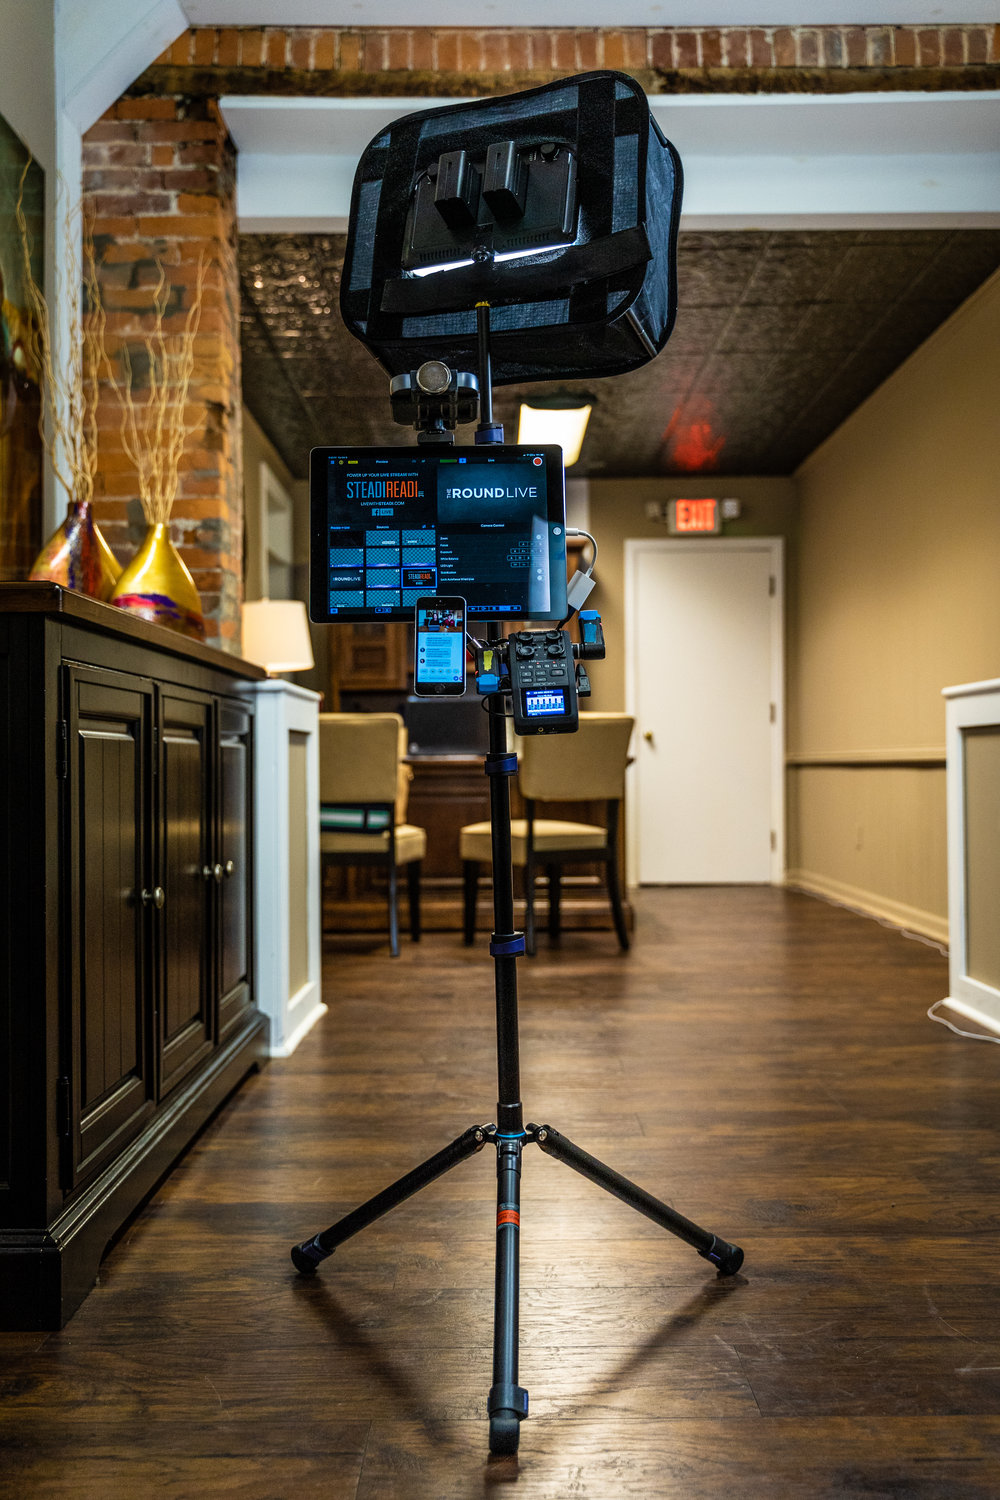 Command Center 5.0 - The best (yet) of all worlds. Let's break it down:Speed - The most efficient setup, with minimal equipment, yielding maximum results.Size - Entire setup, everything fits into a single medium size camera bag, including stands.Cost - Just because it's the best yet, doesn't mean it's expensive. Even if it was, it'd totally be worth it.